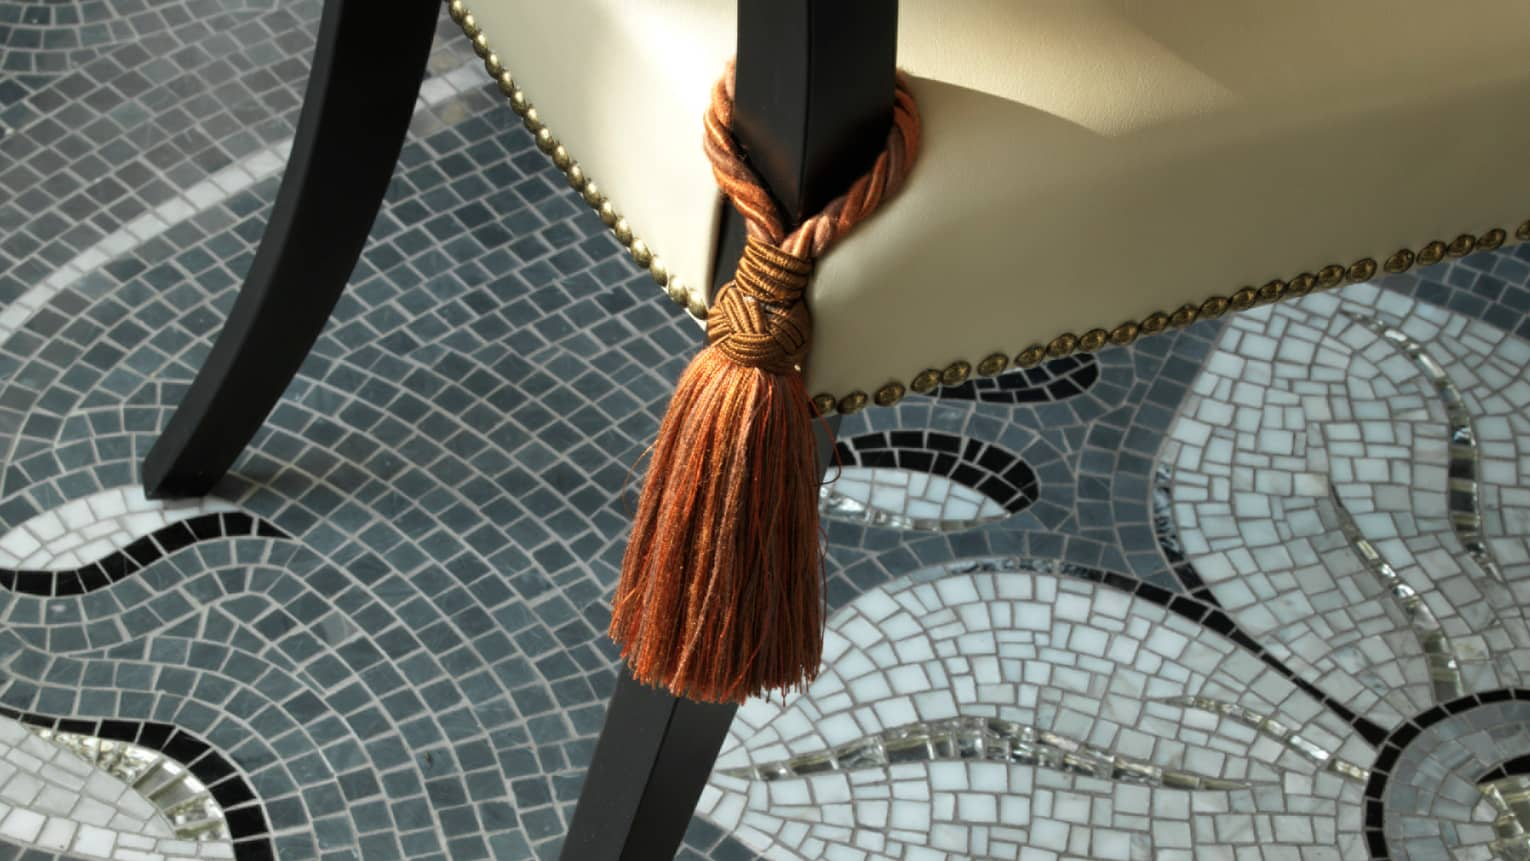 Close-up of rust-coloured tassel tied around arm of dining chair, mosaic tile floor below